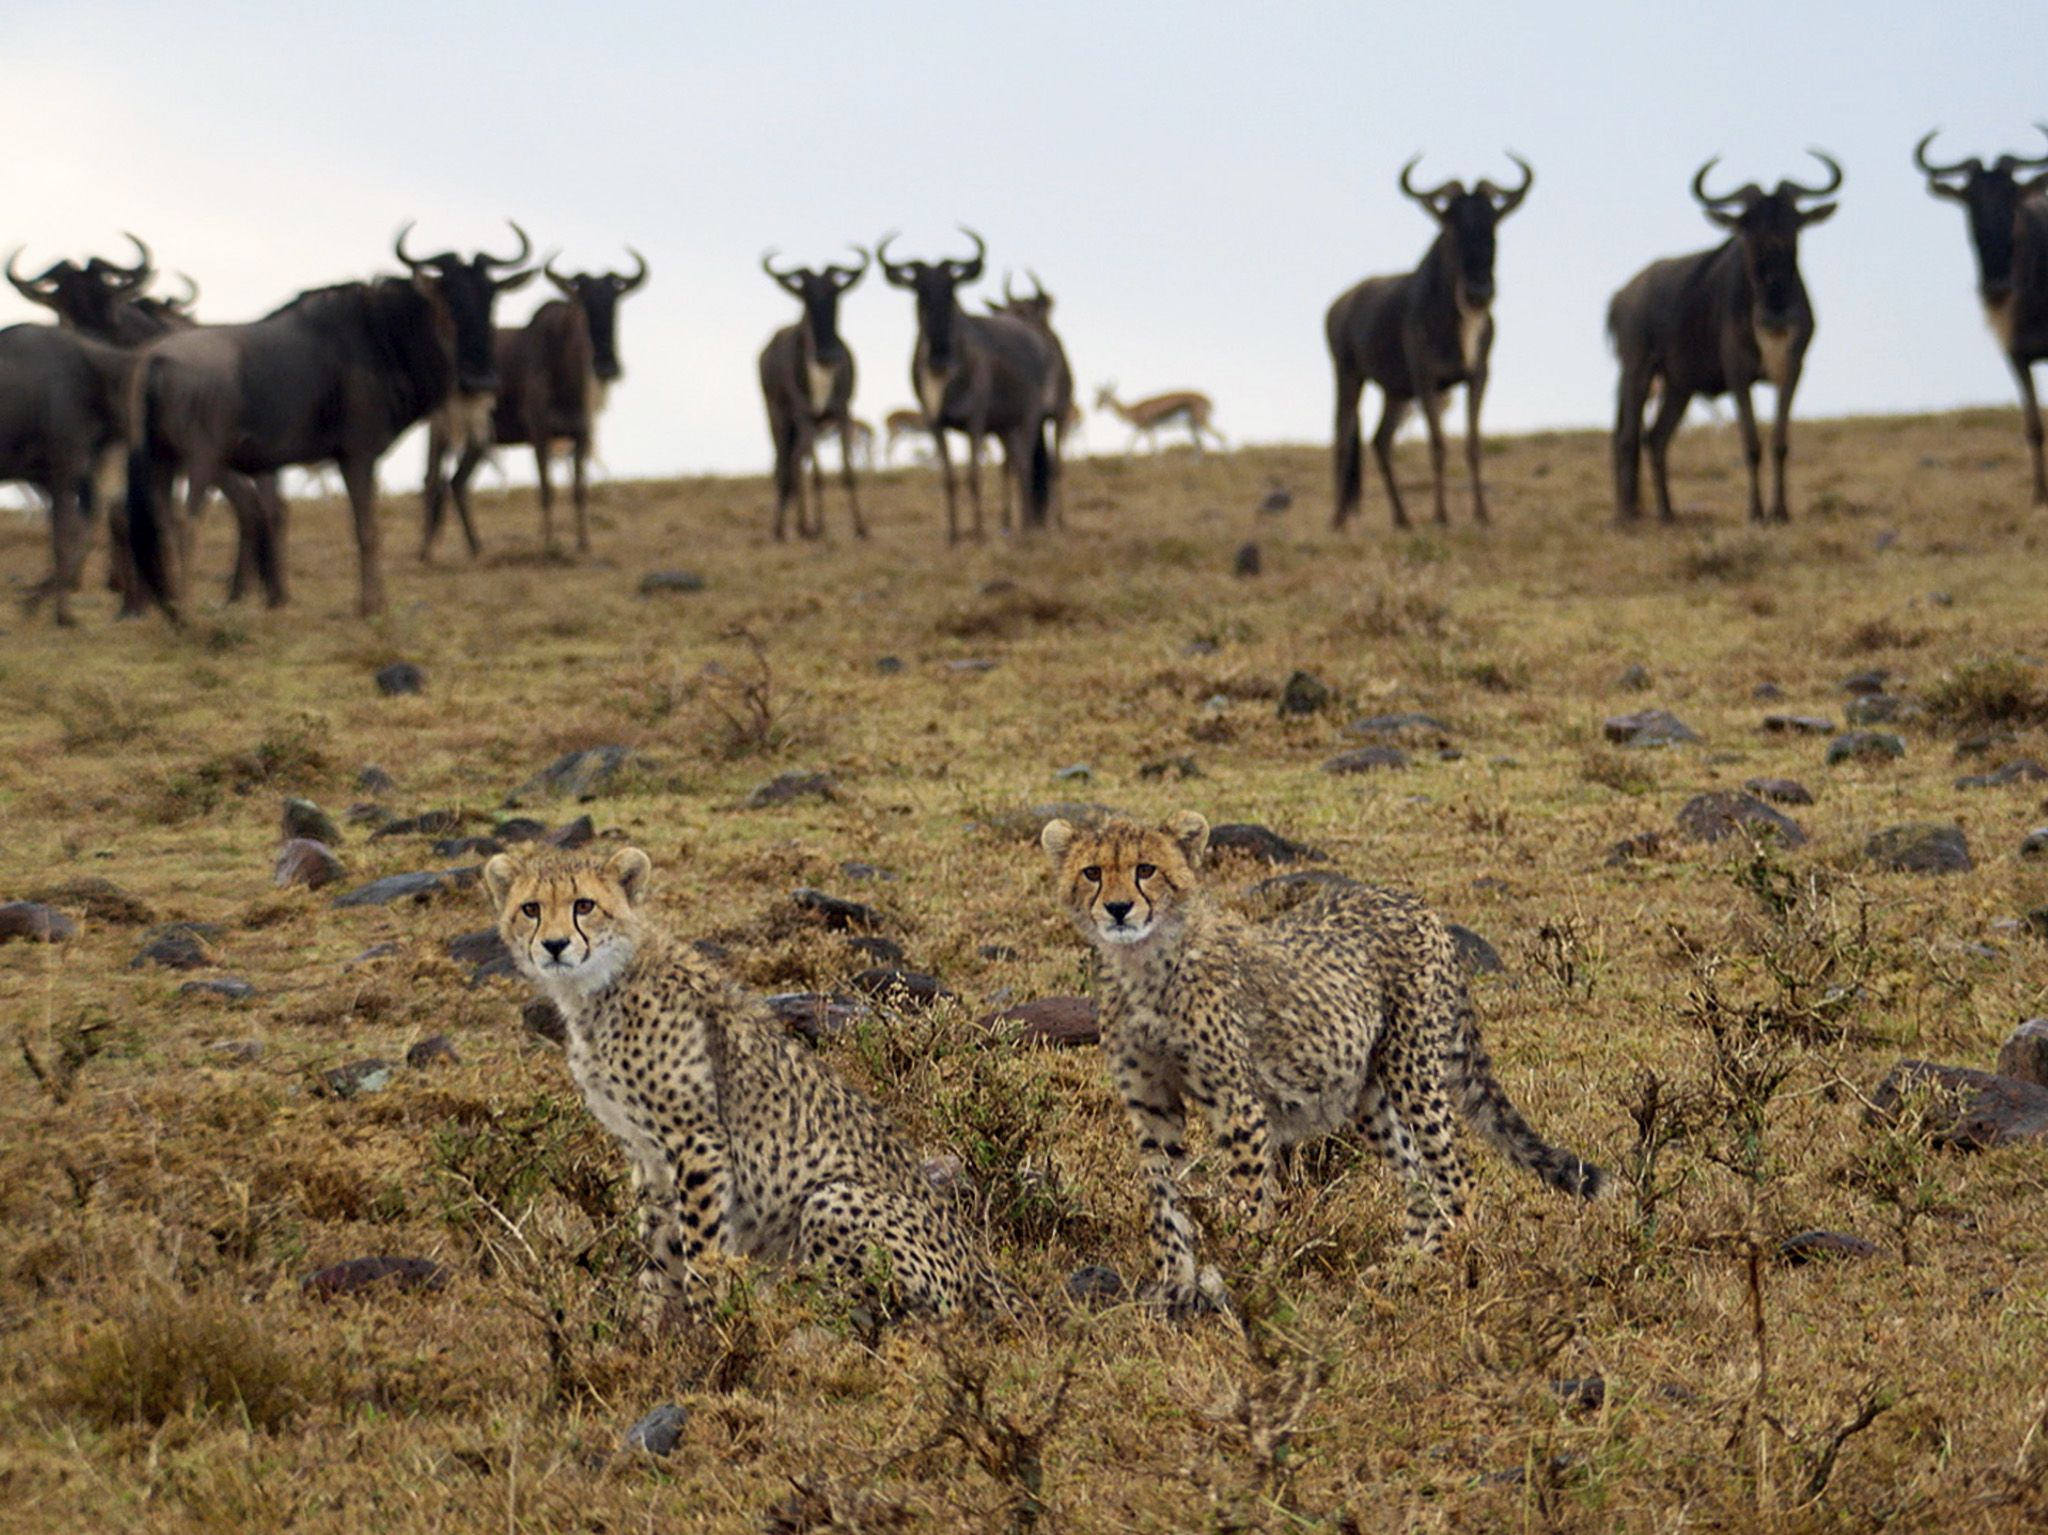 Naboisho, Kenya:  Cheetahs in foreground with wildebeest in background.  This image is from Man... [Photo of the day - January 2018]